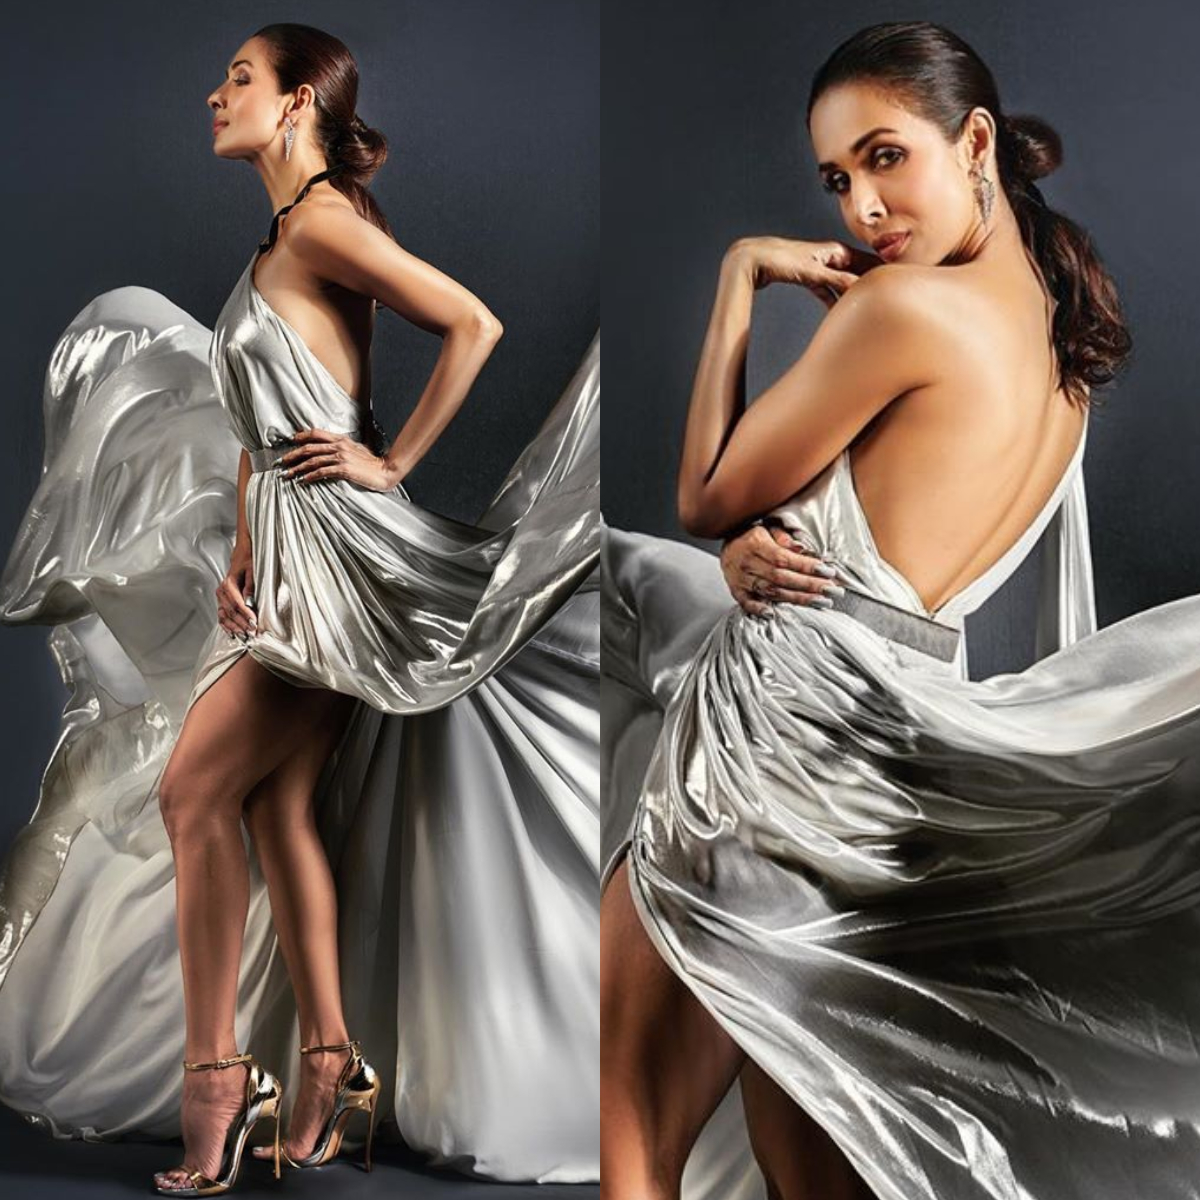 Malaika Arora in a Evyatar Myor holographic gown looks nothing short of a goddess: Yay or Nay?